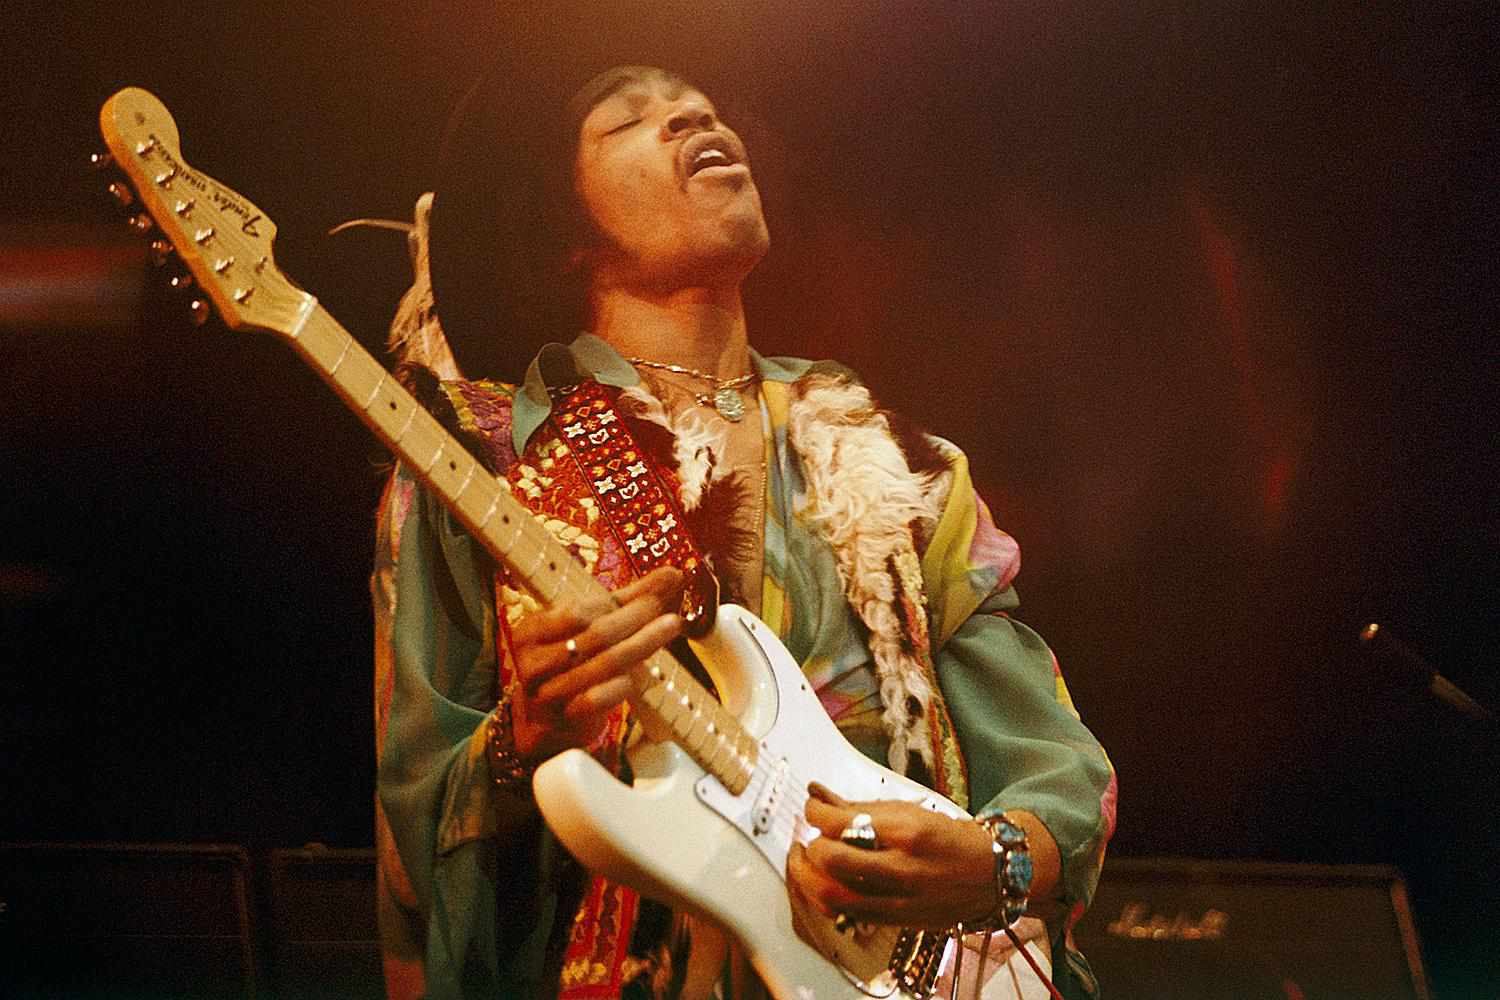 The 15 Best Guitar Solos of All Time